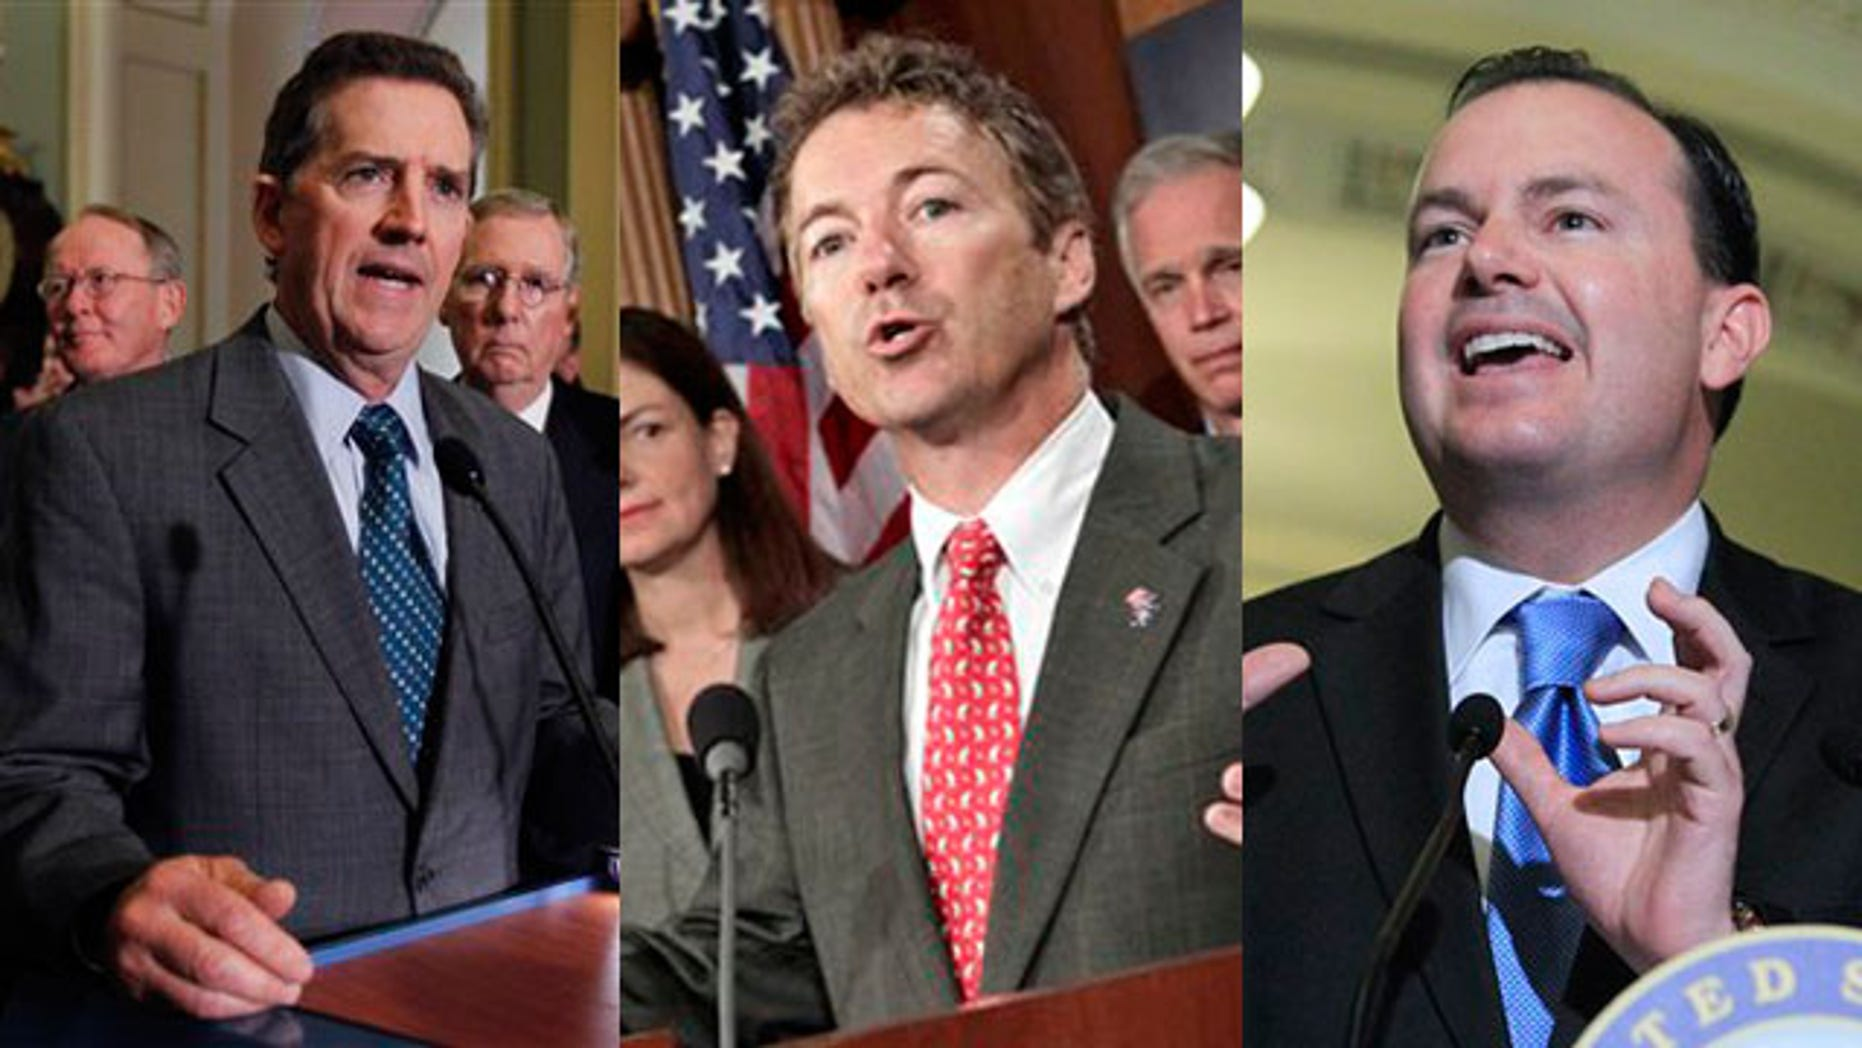 Shown here are Sens. Jim DeMint, left; Rand Paul, center; and Mike Lee.